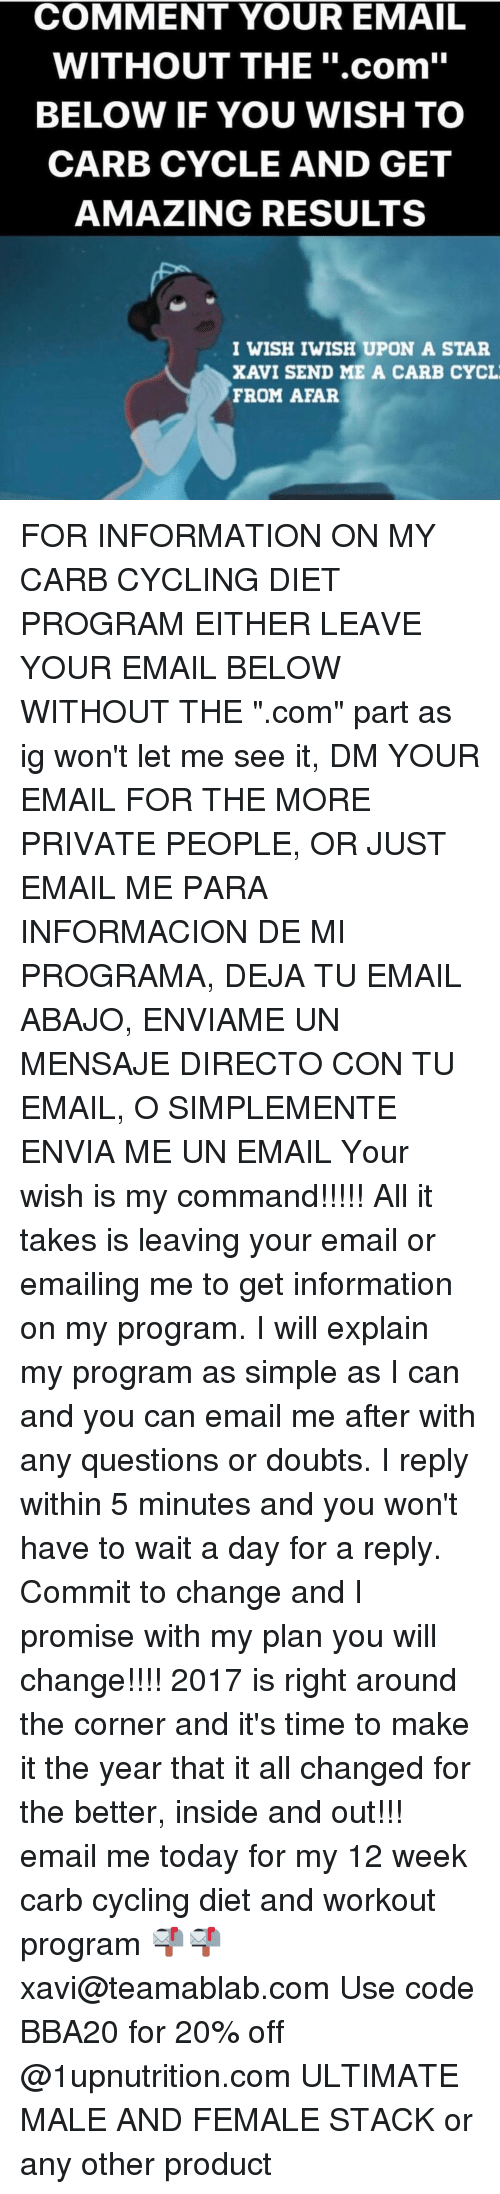 COMMENT YOUR EMAIL WITHOUT THE Com BELOW IF YOU WISH TO CARB CYCLE ...